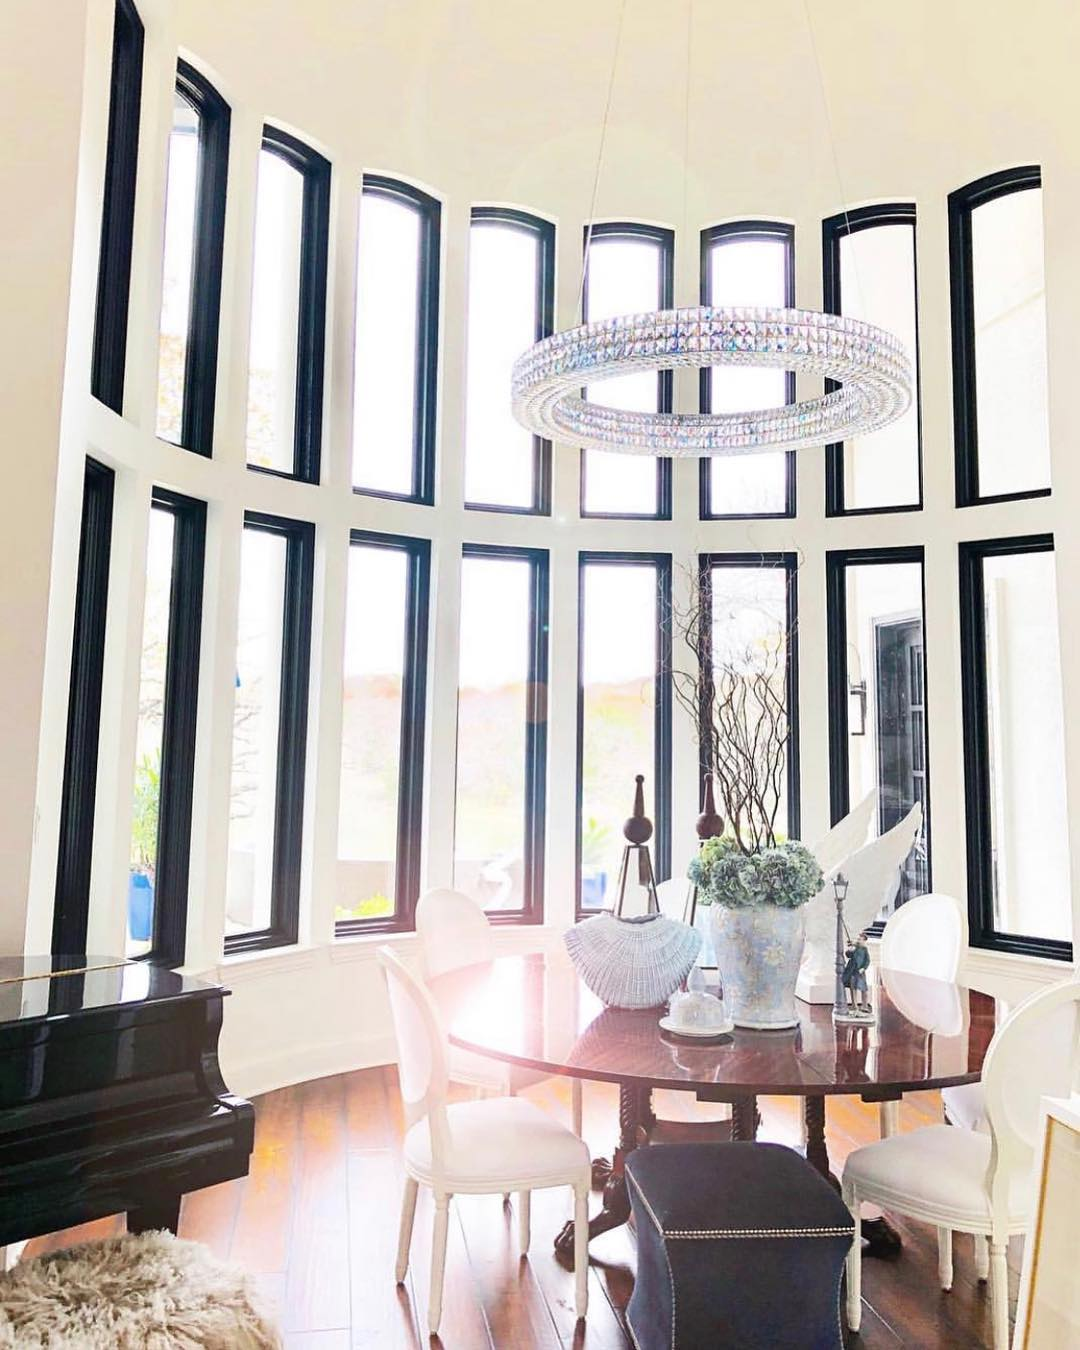 curved wall filled with black casement windows in a dining room